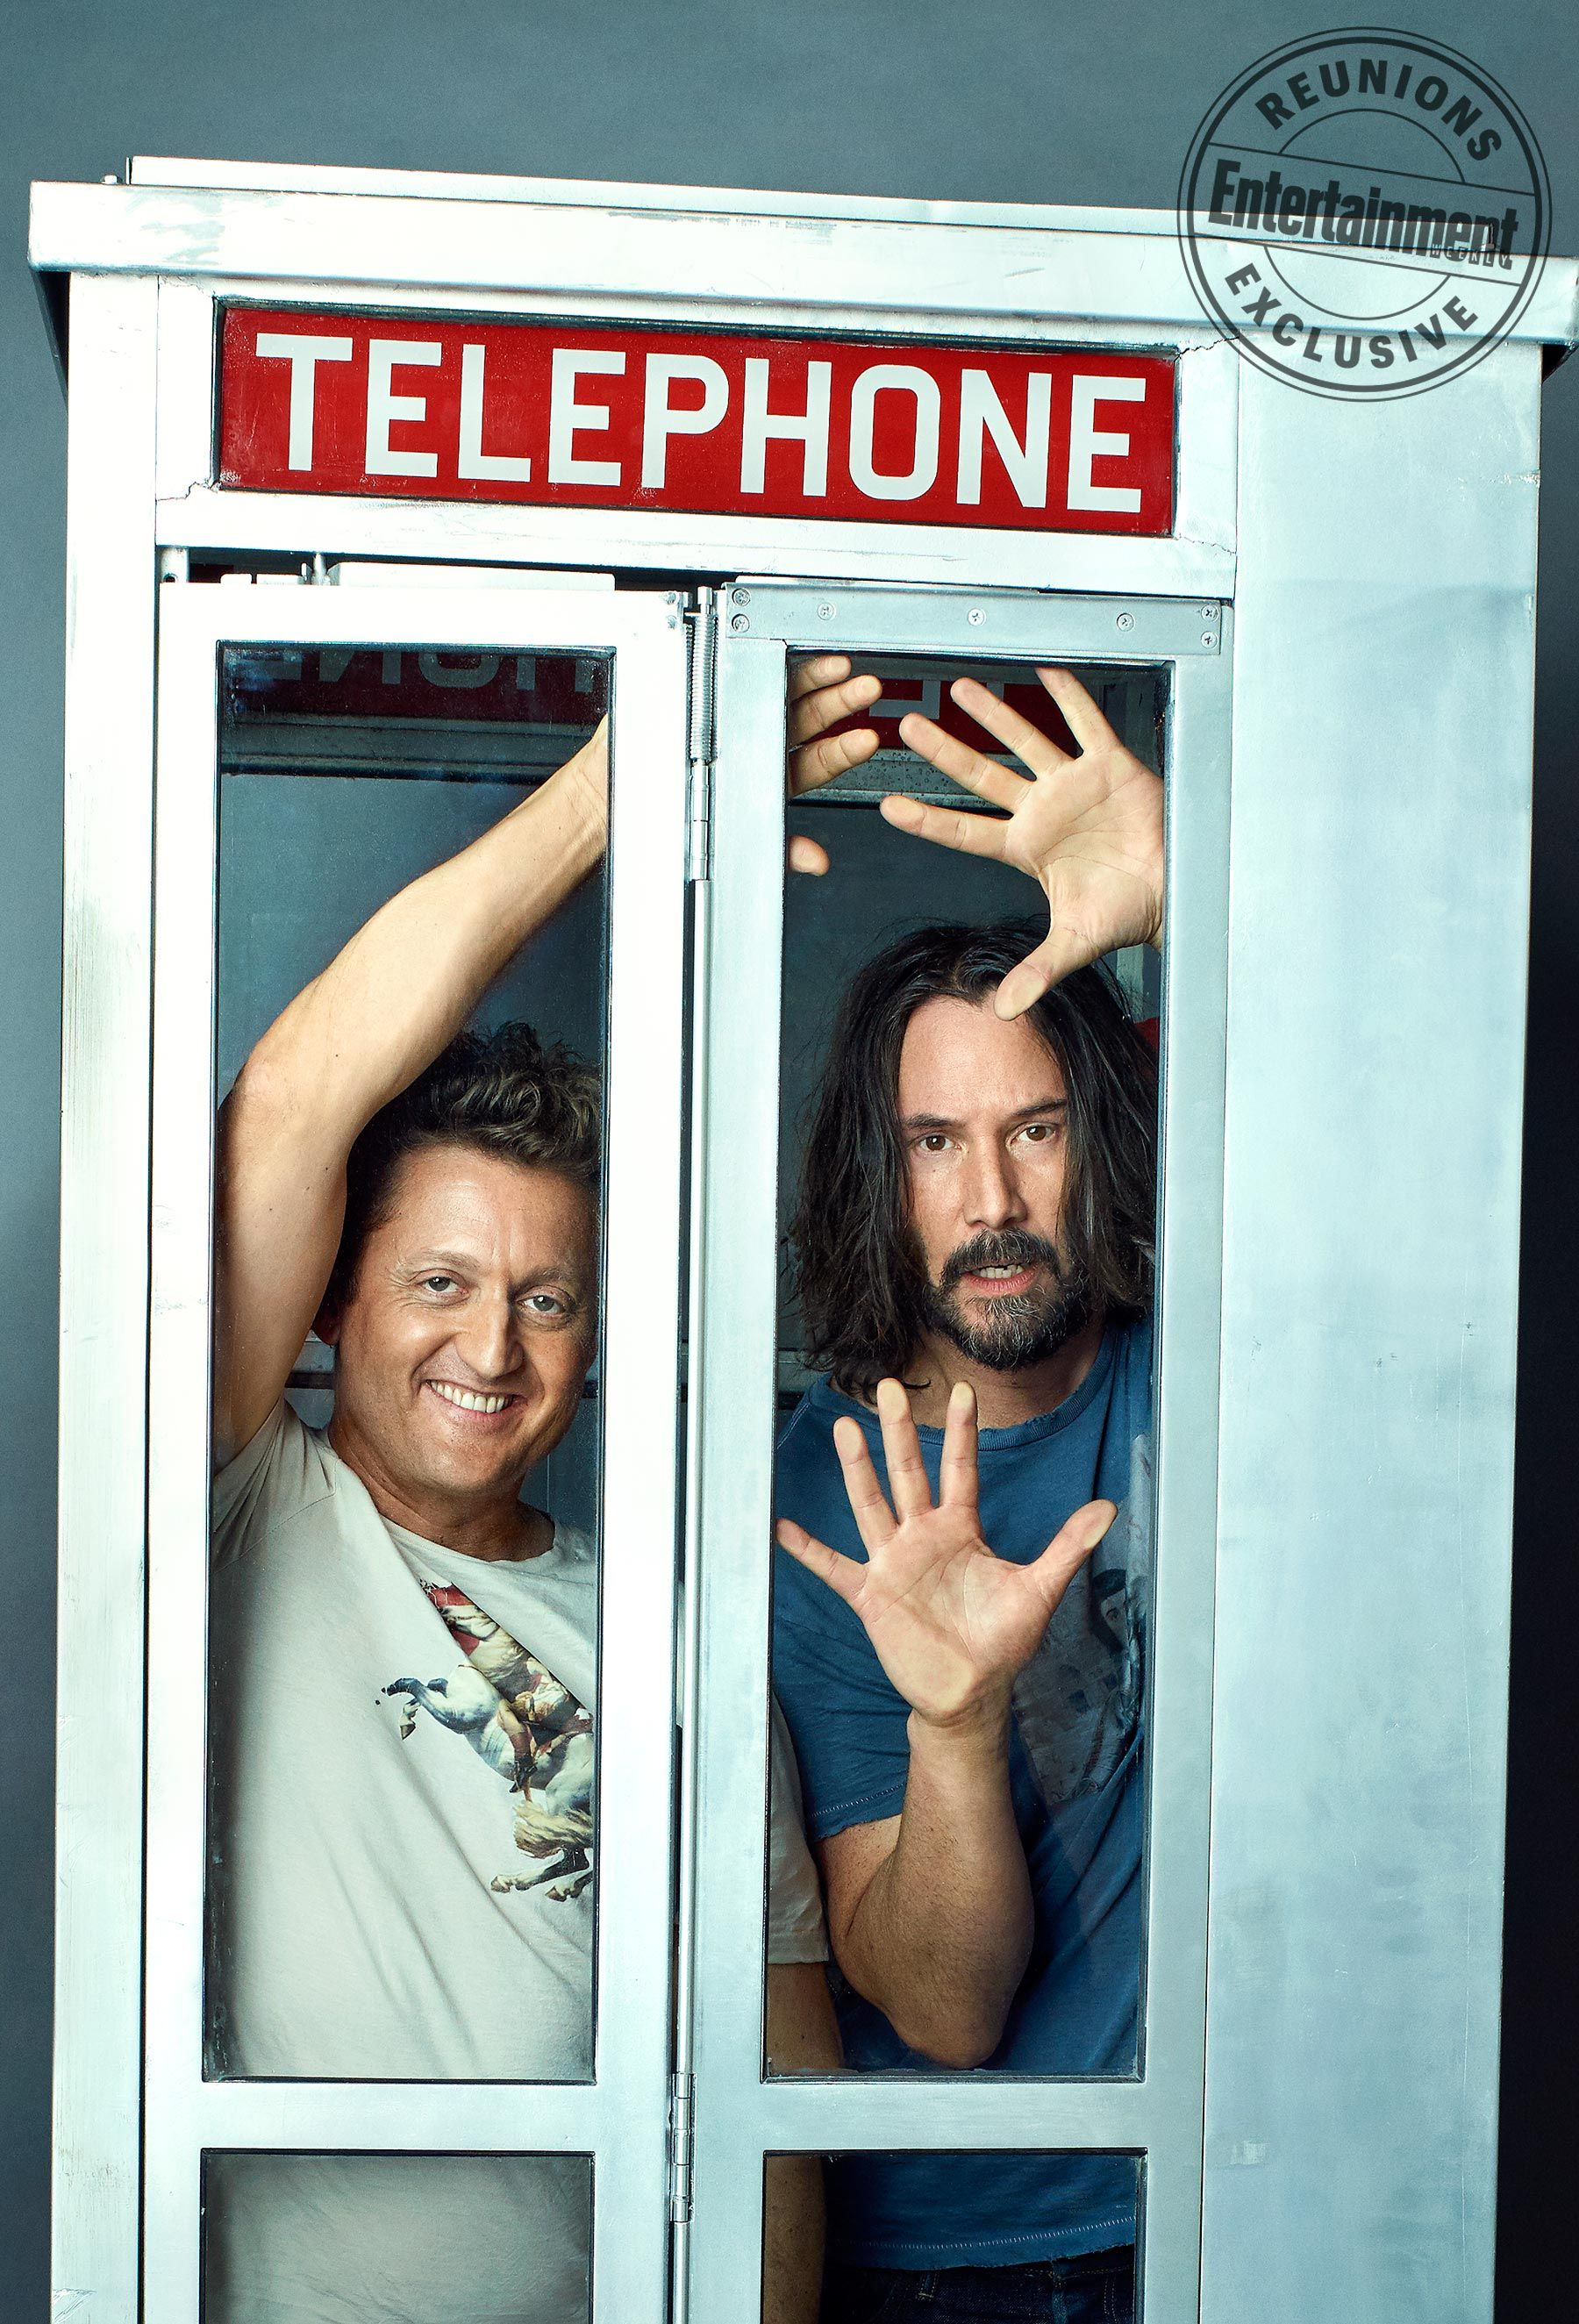 Bill Ted 3 Keanu Reeves And Alex Winter Dish On Proposed Sequel Keanu Reeves Face The Music Alex Winter